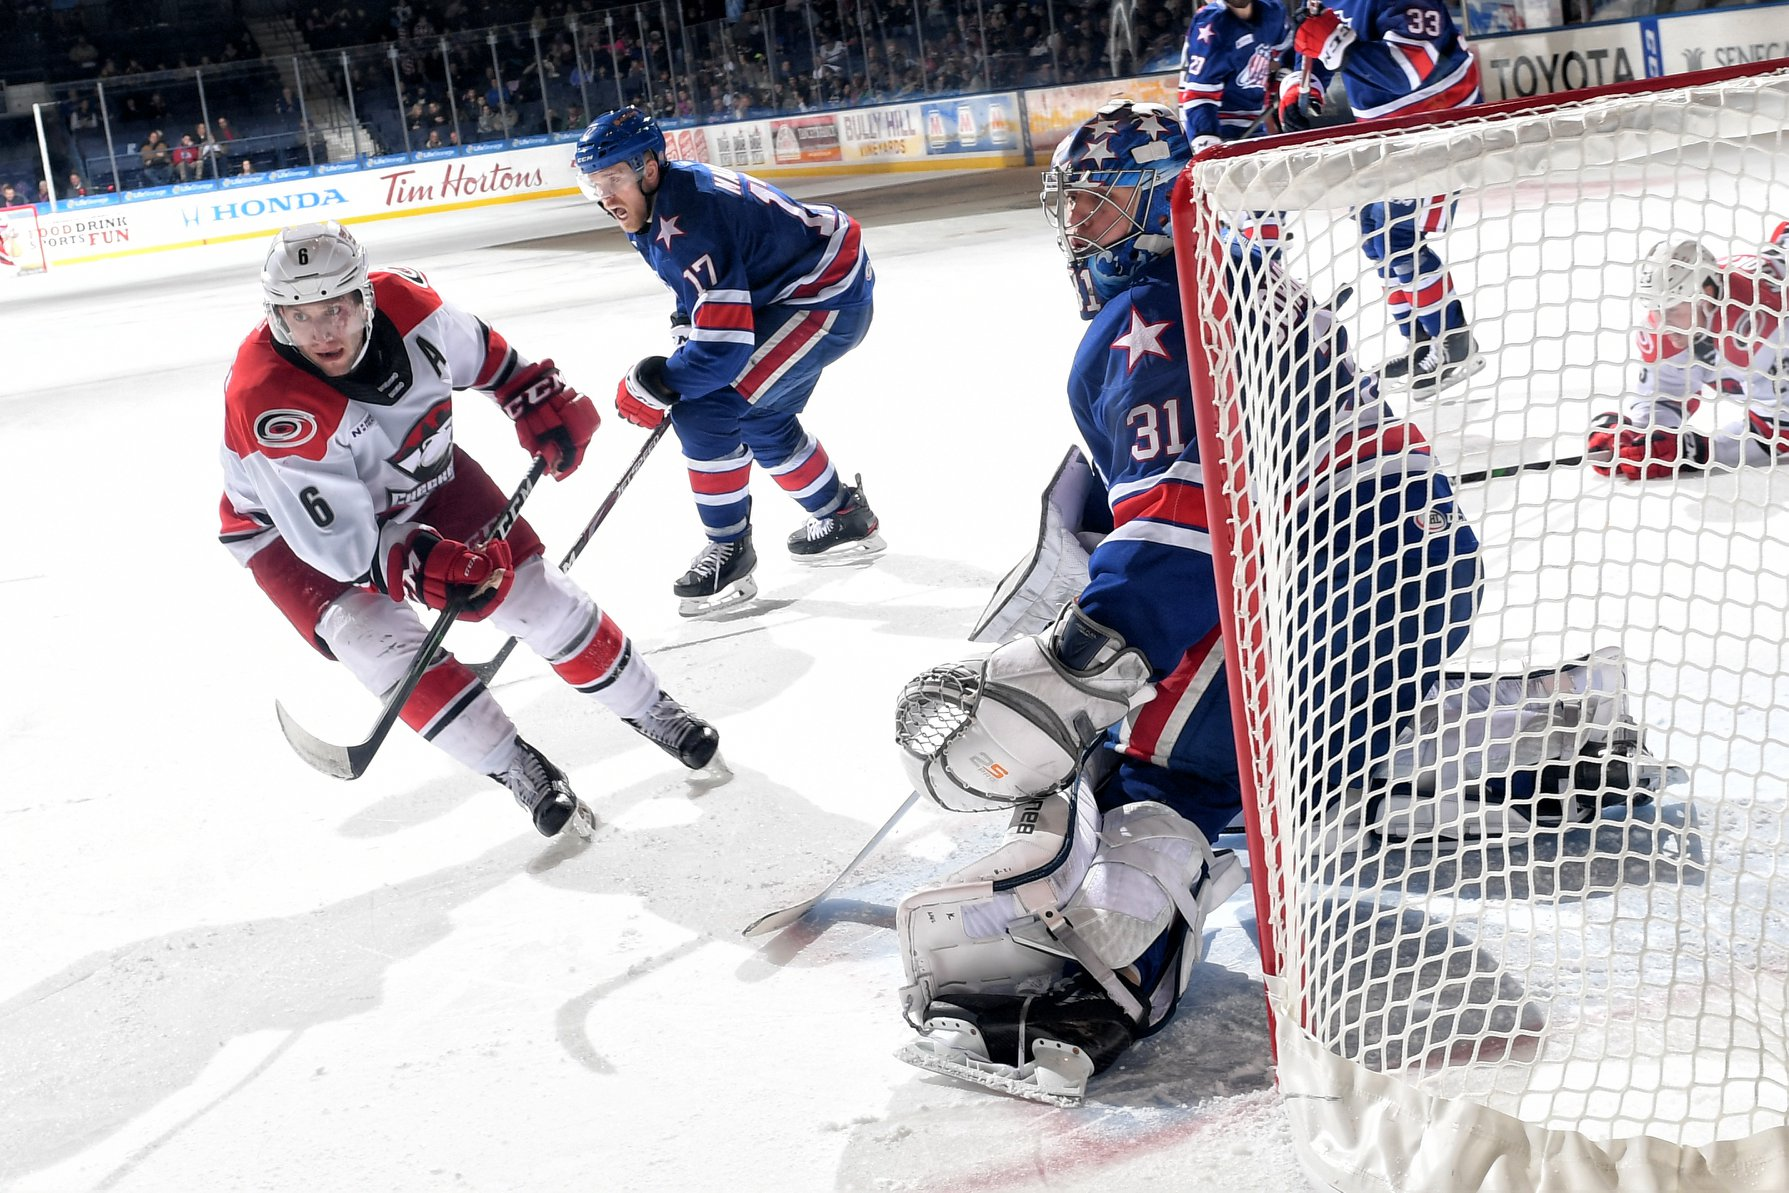 Recap: Shutout for Johansson and Four Different Goal Scorers